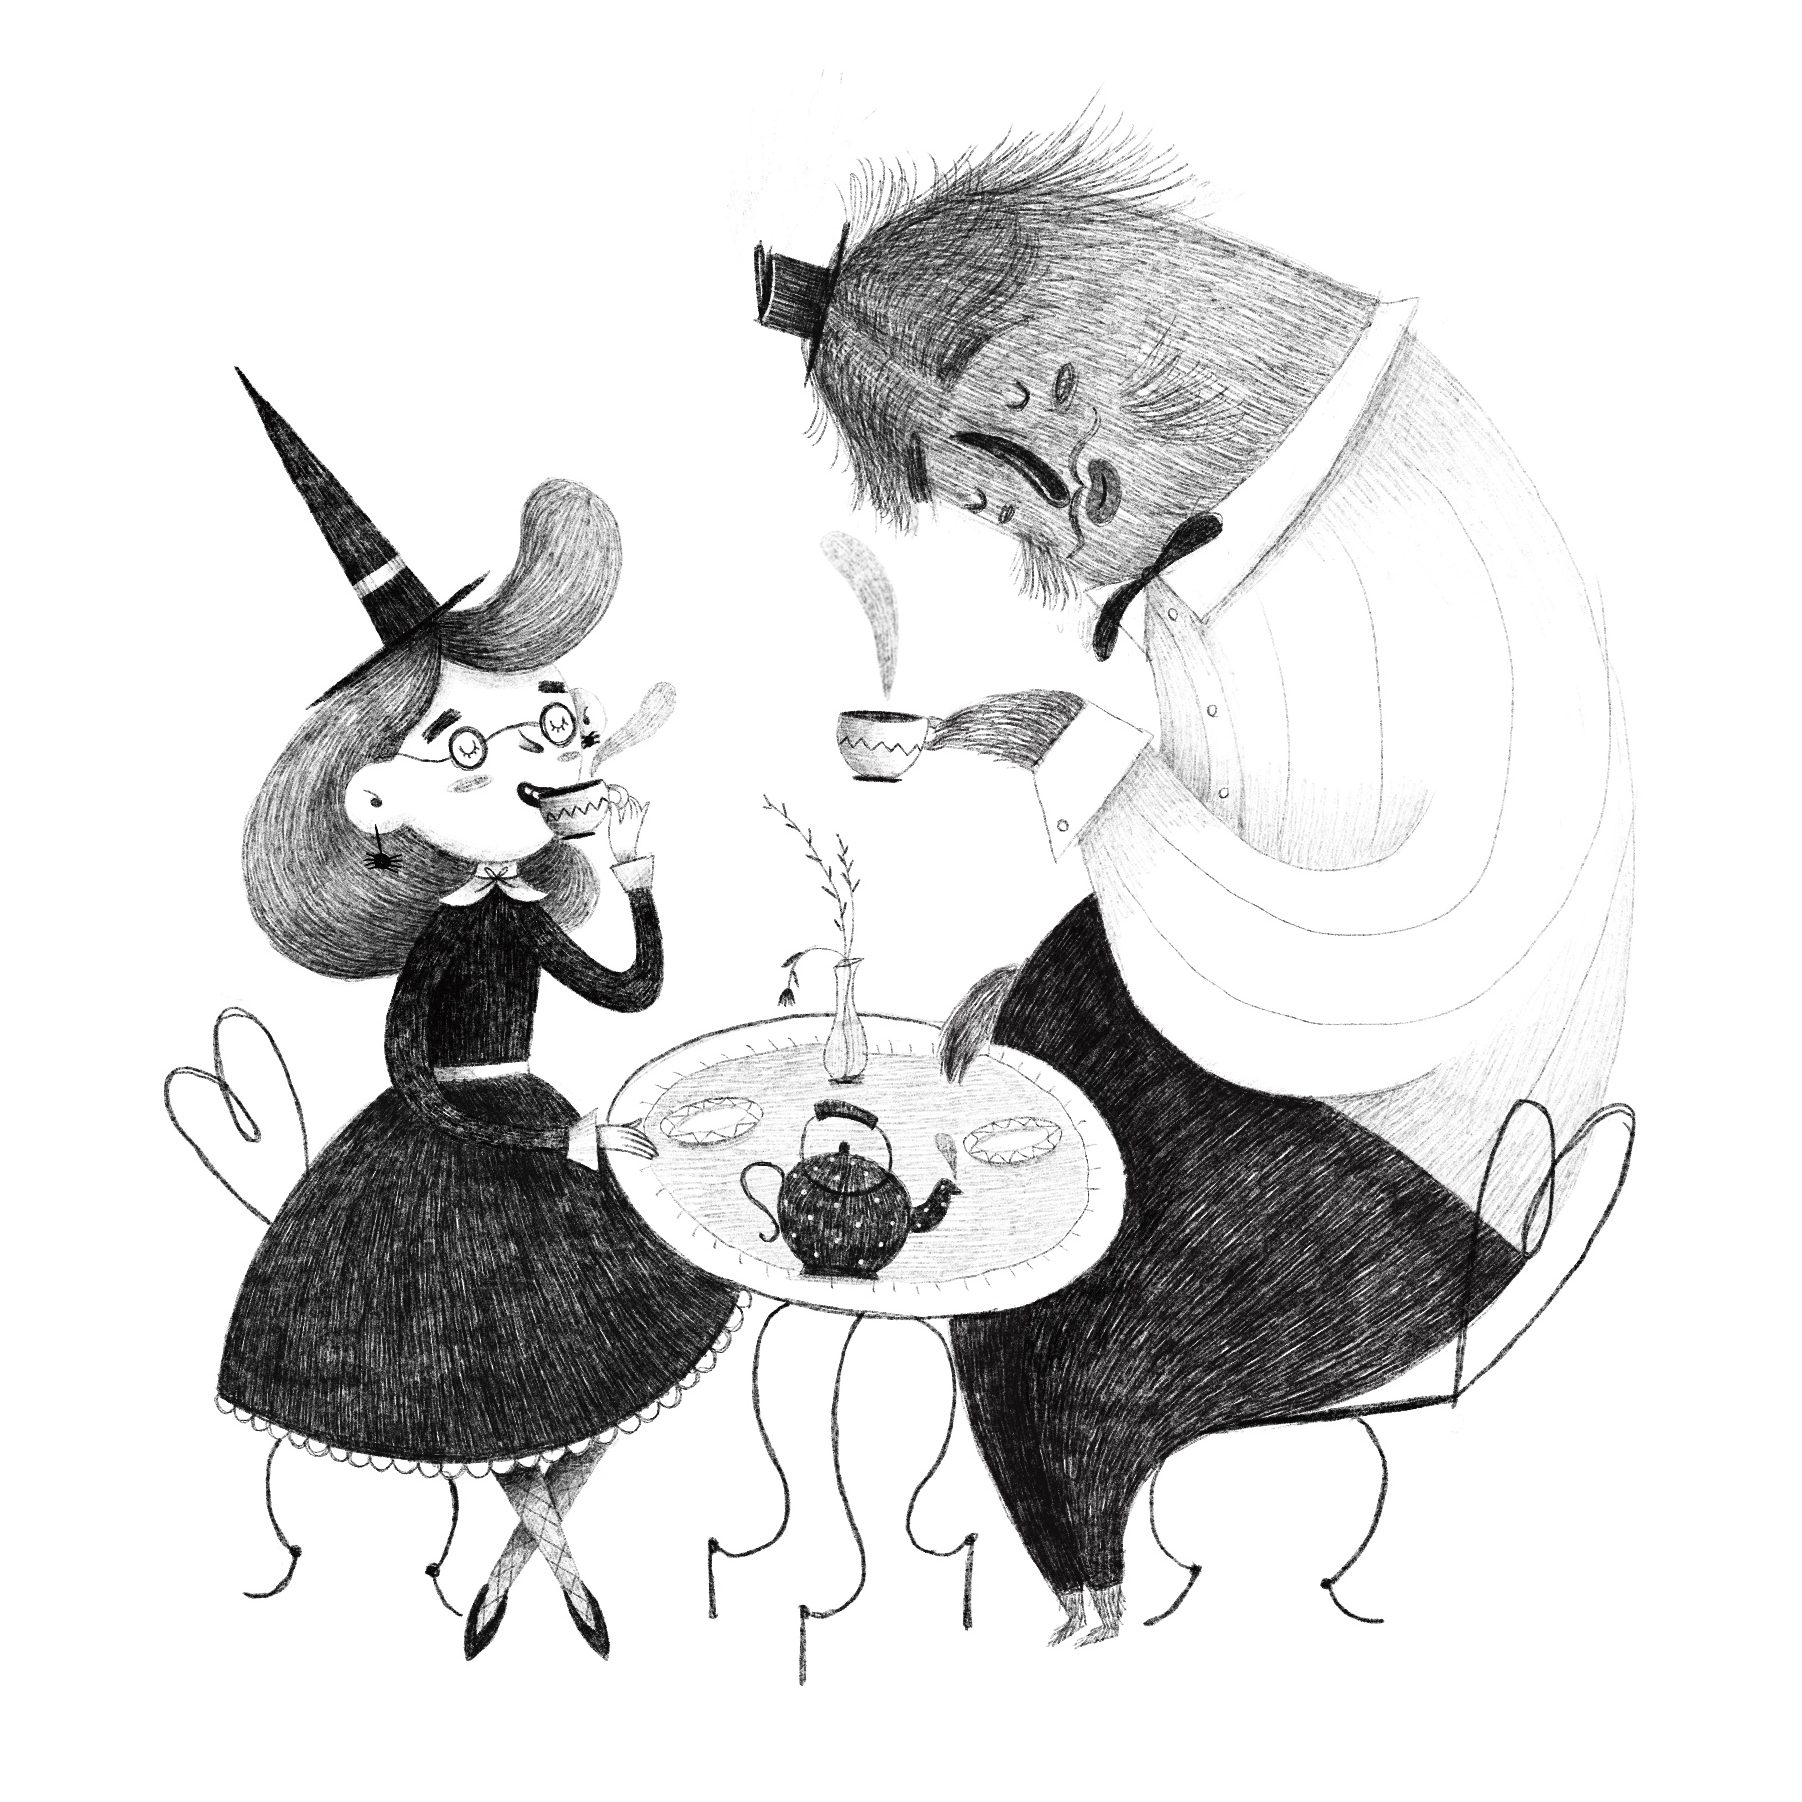 Tea party with a monster